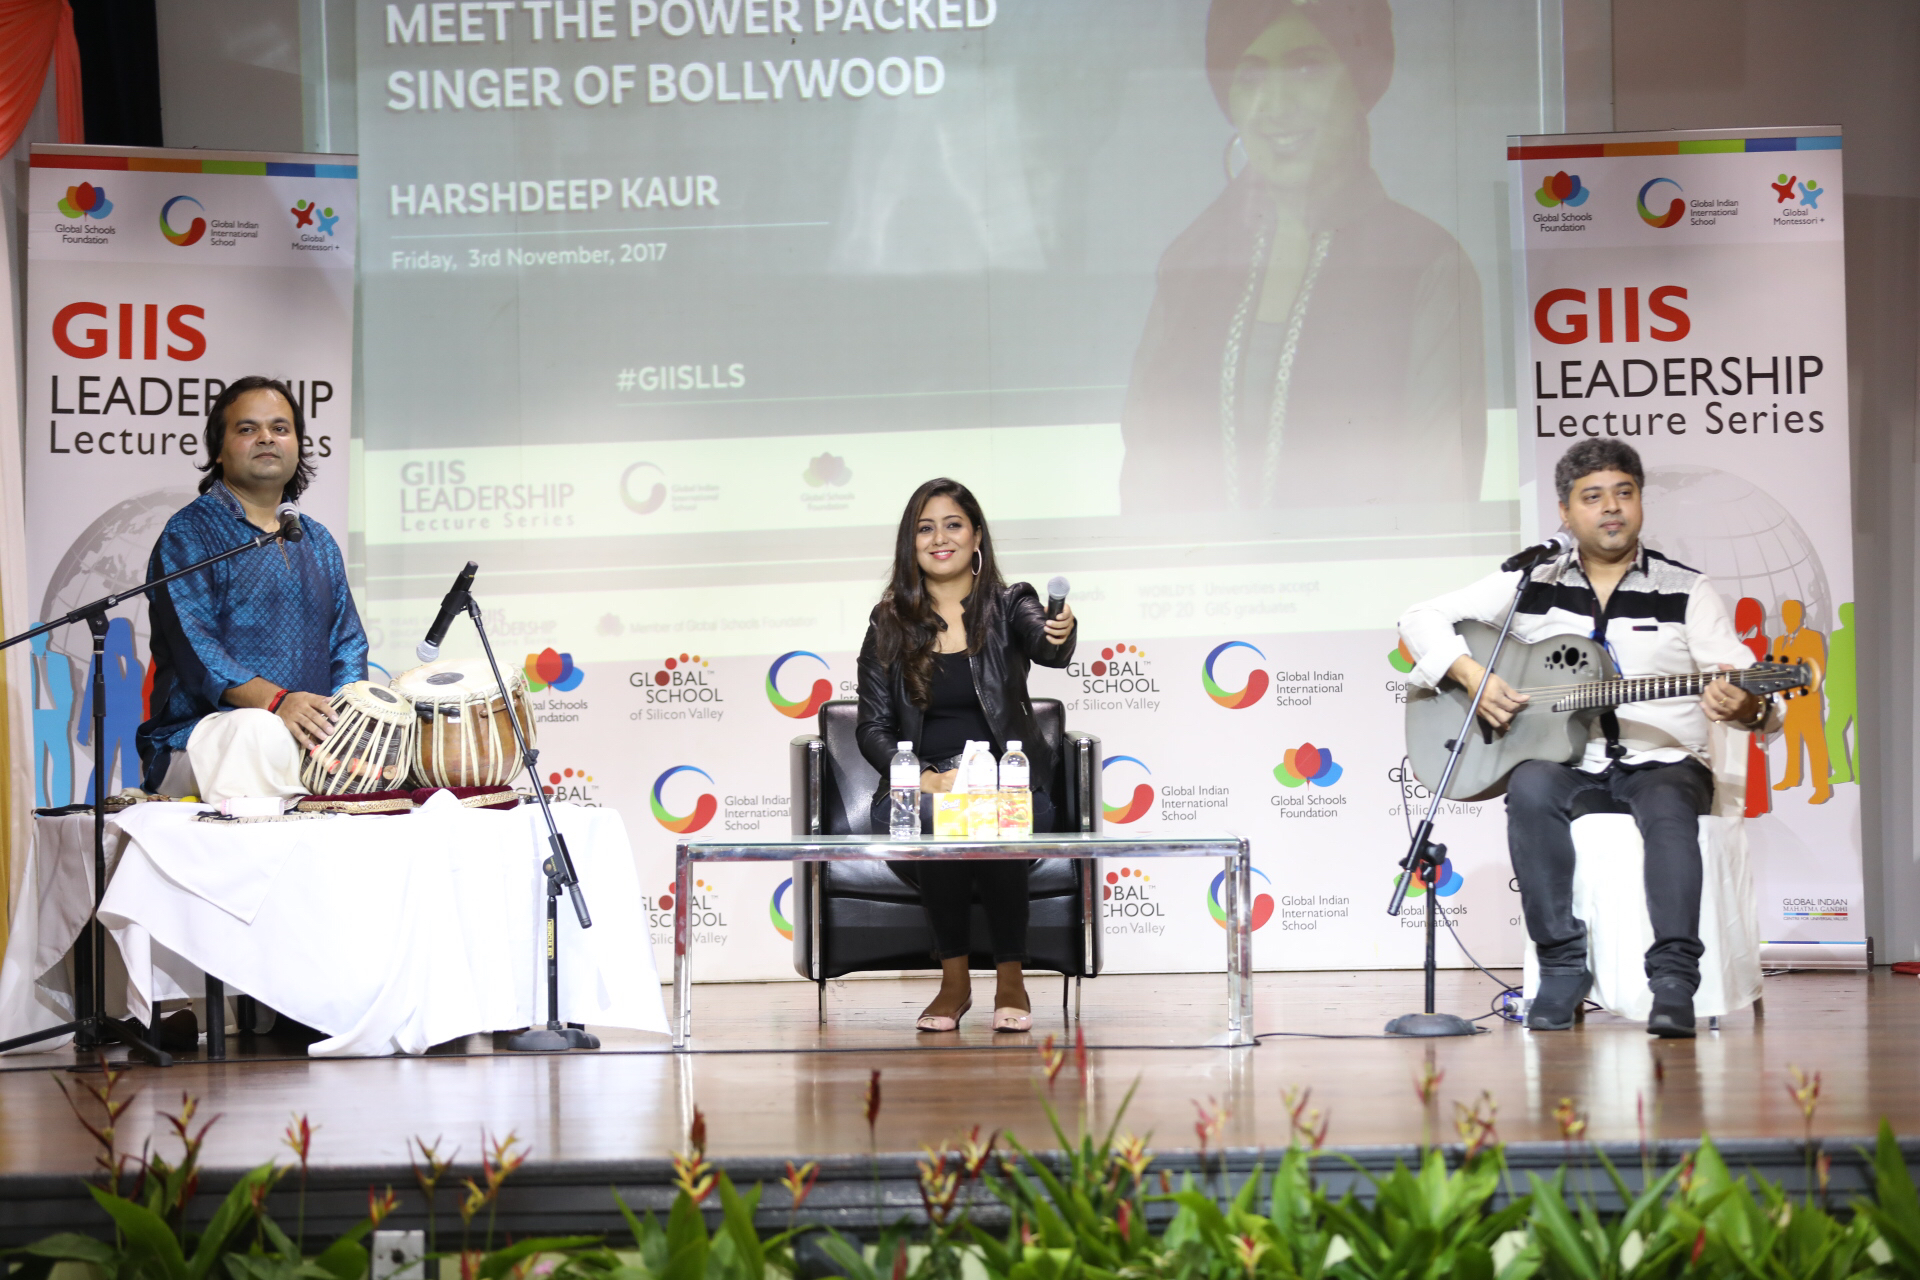 Harsheep Kaur appears to be all smiles while interacting with GIIS students. Photo courtesy: GIIS